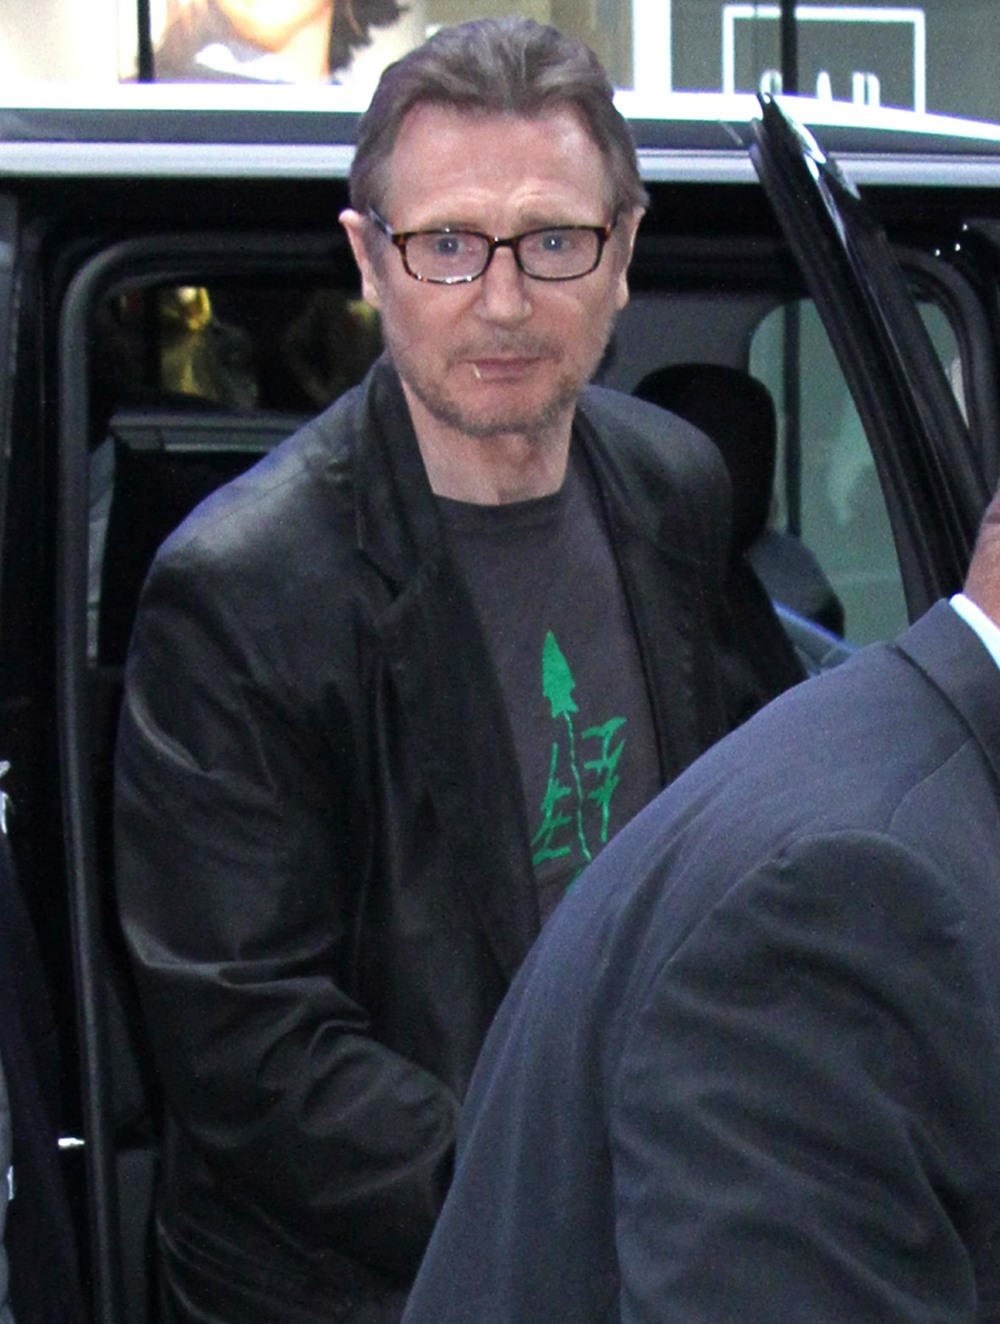 Liam Neeson denies being racist on 'GMA' following controversial remarks